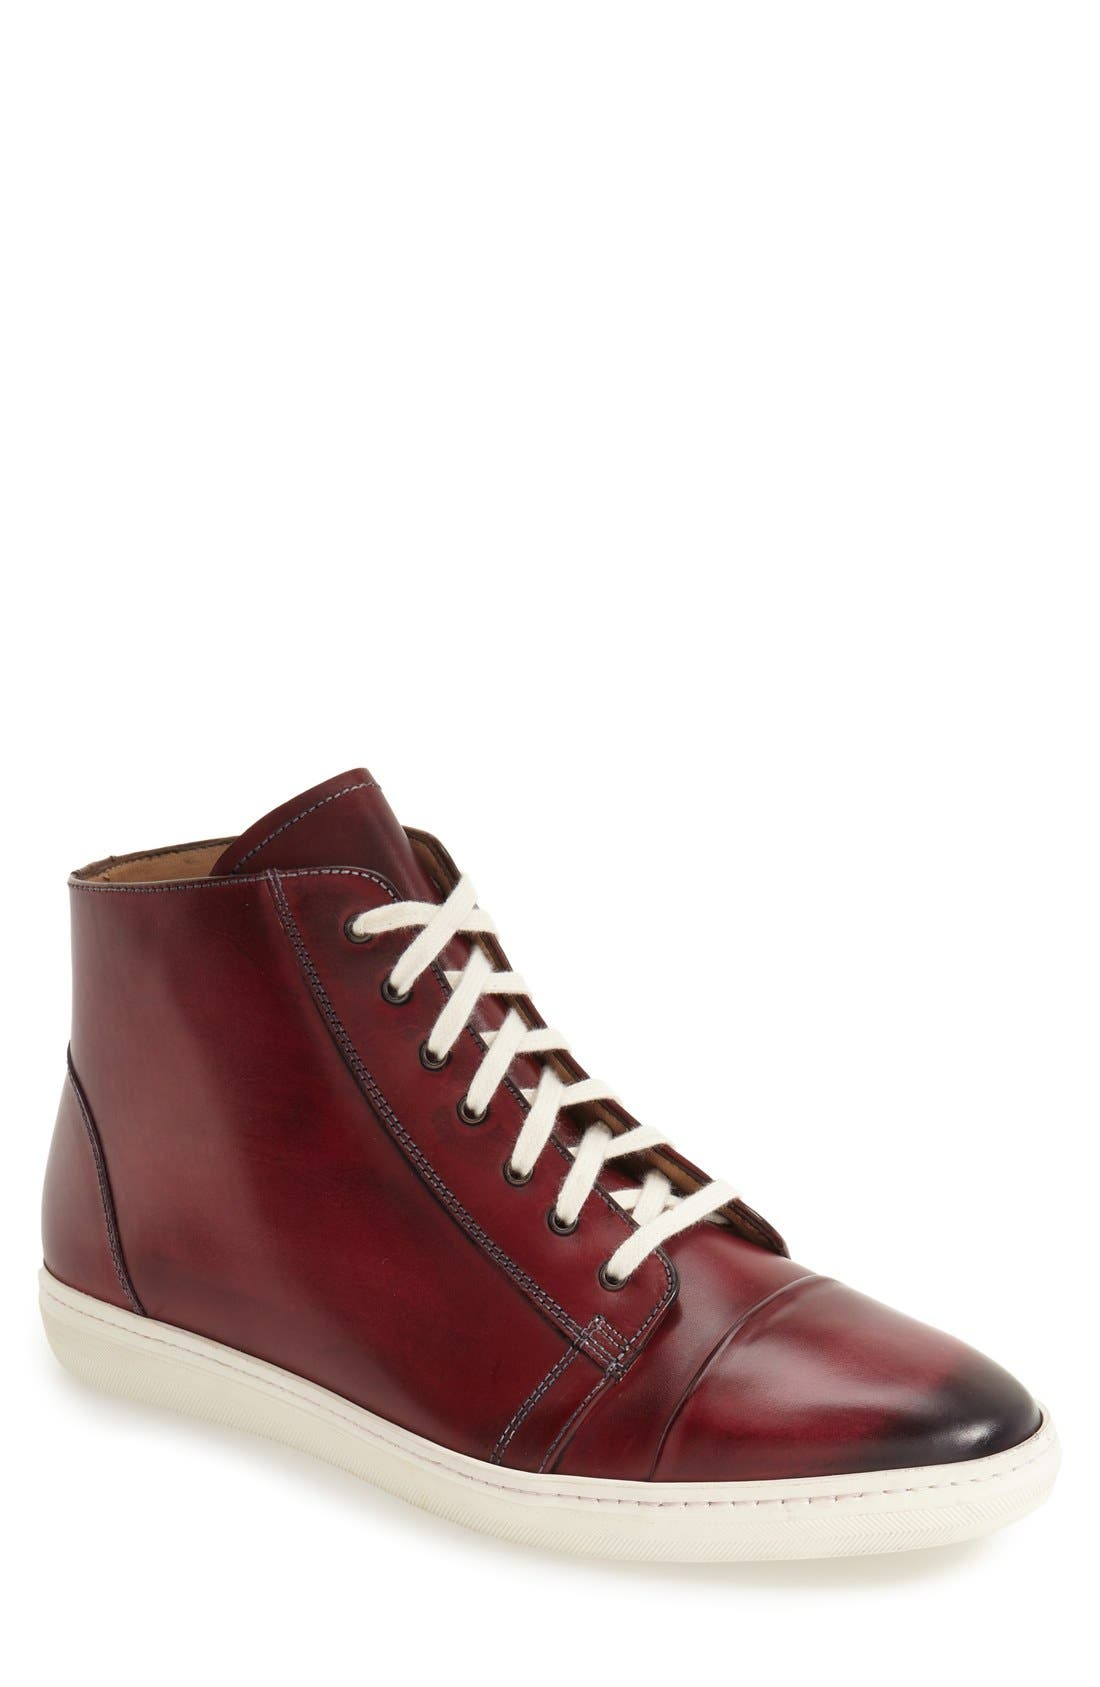 MEZLAN 'Marsala' High Top Sneaker